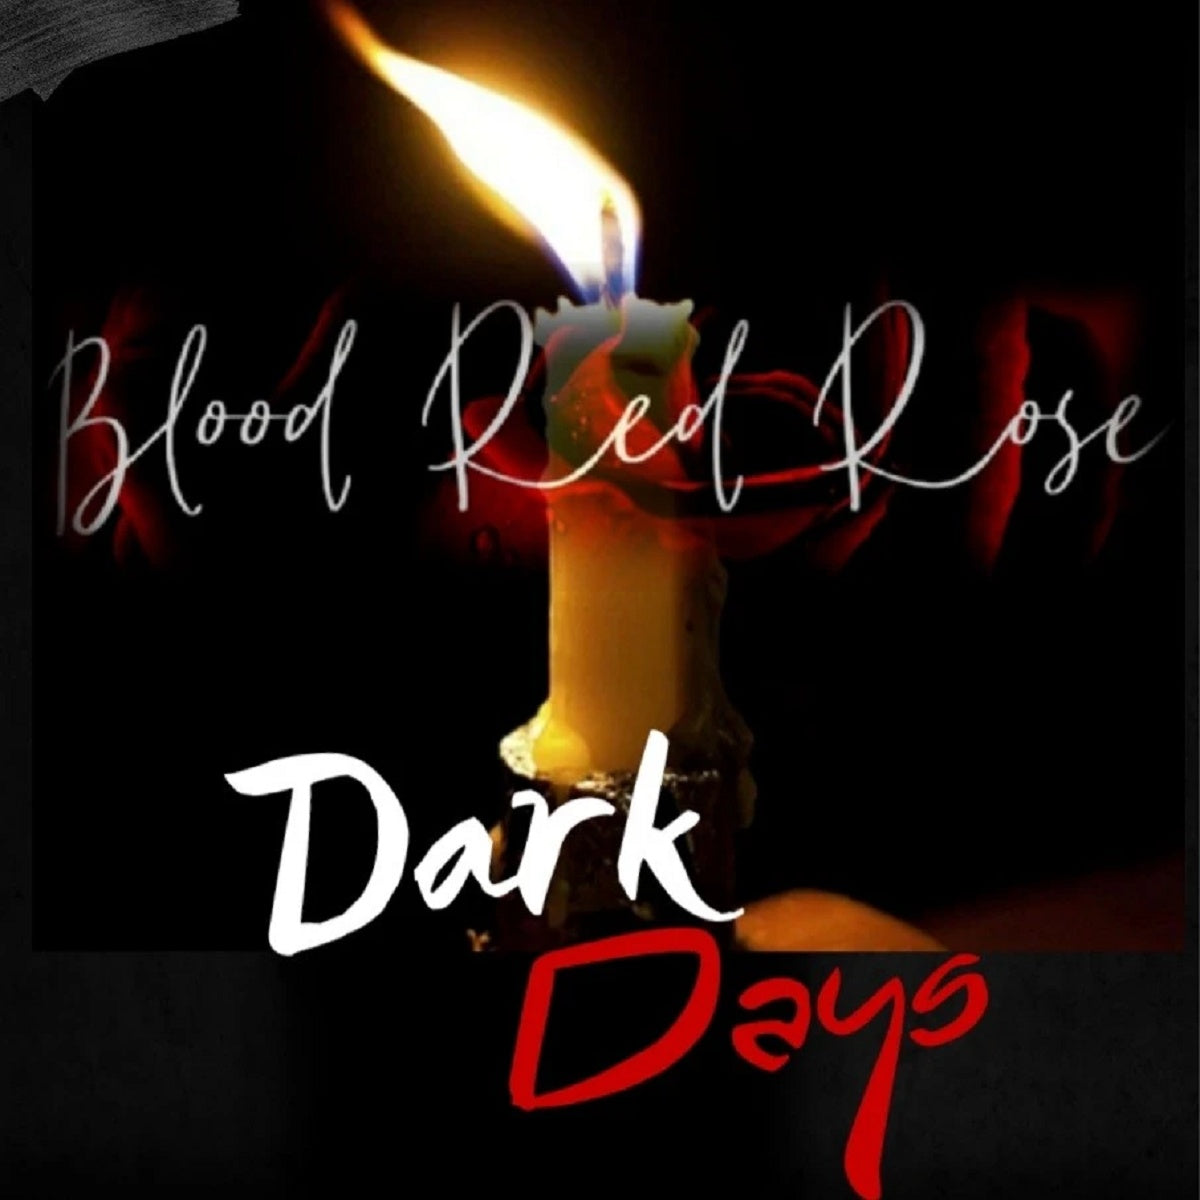 Blood Red Rose – 'Dark Days'